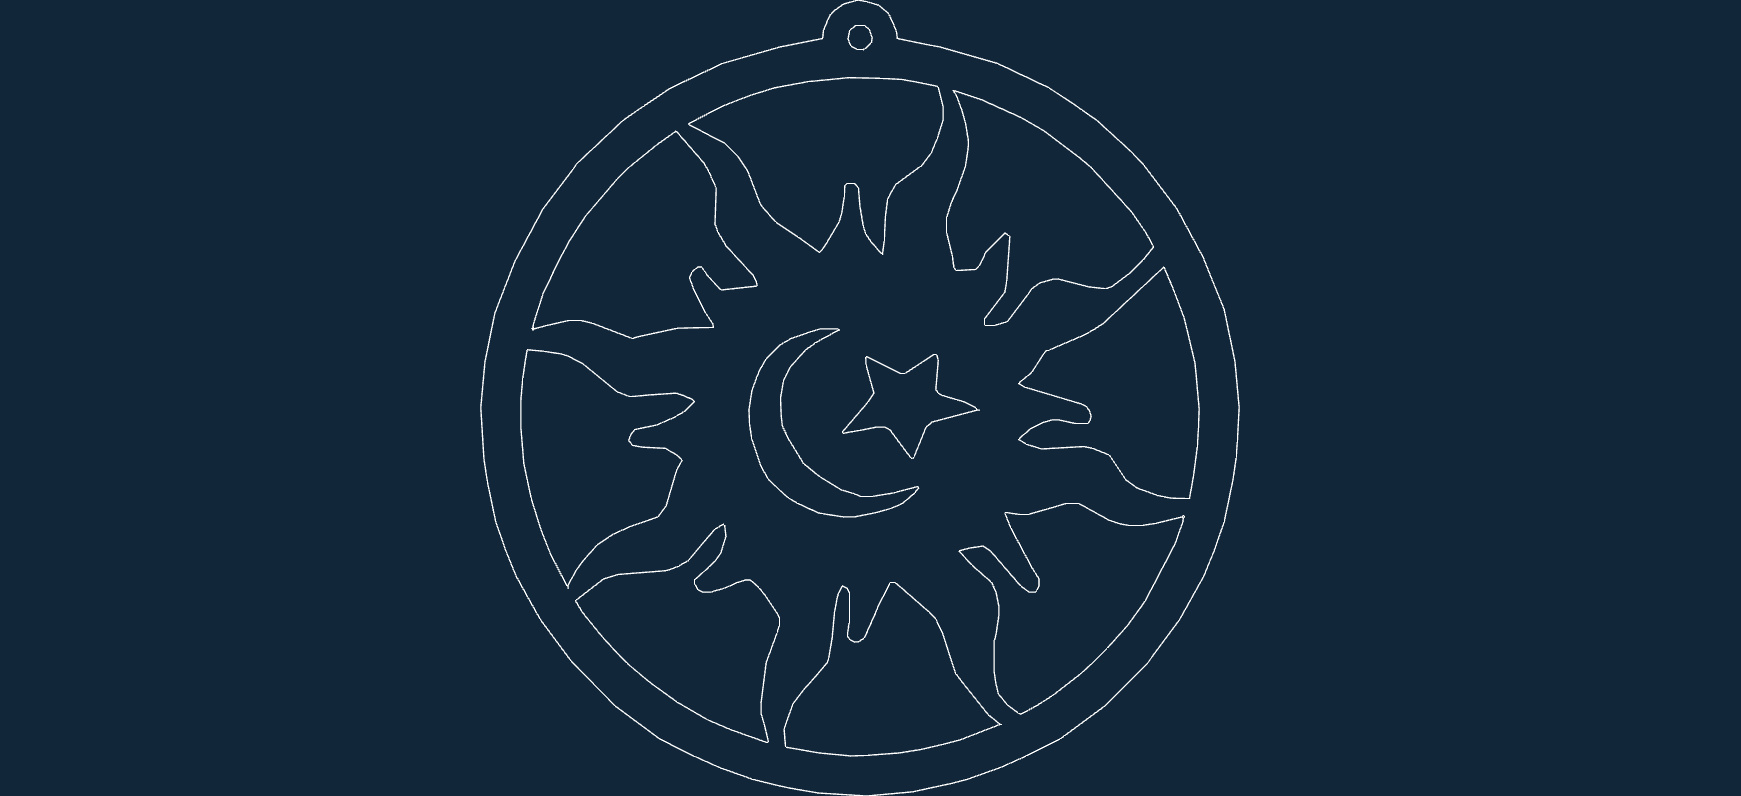 sun moon star Free Dxf File for CNC